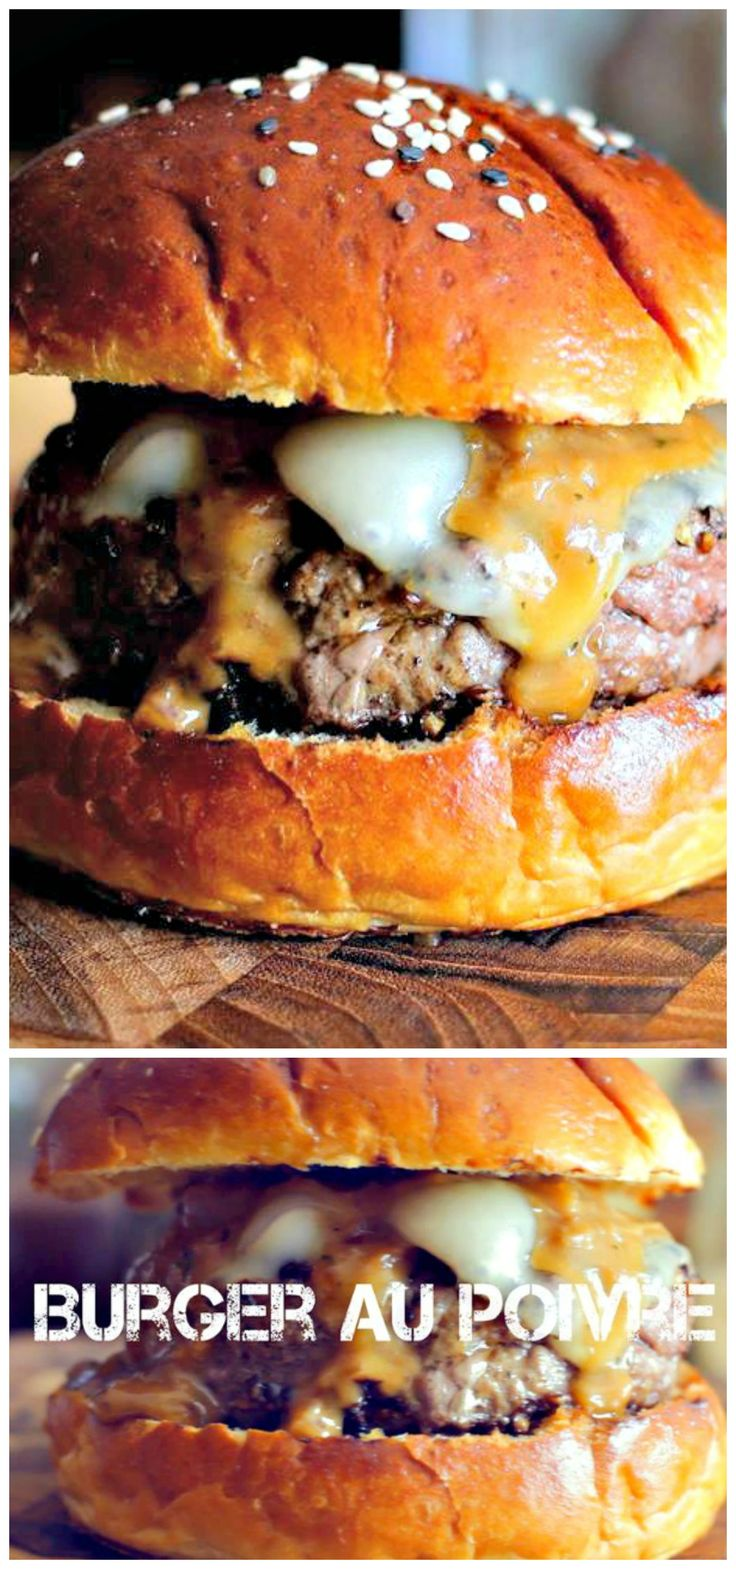 Burger Au Poivre - Turning this #French #classic into a #delicious burger. RT if you love burgers!